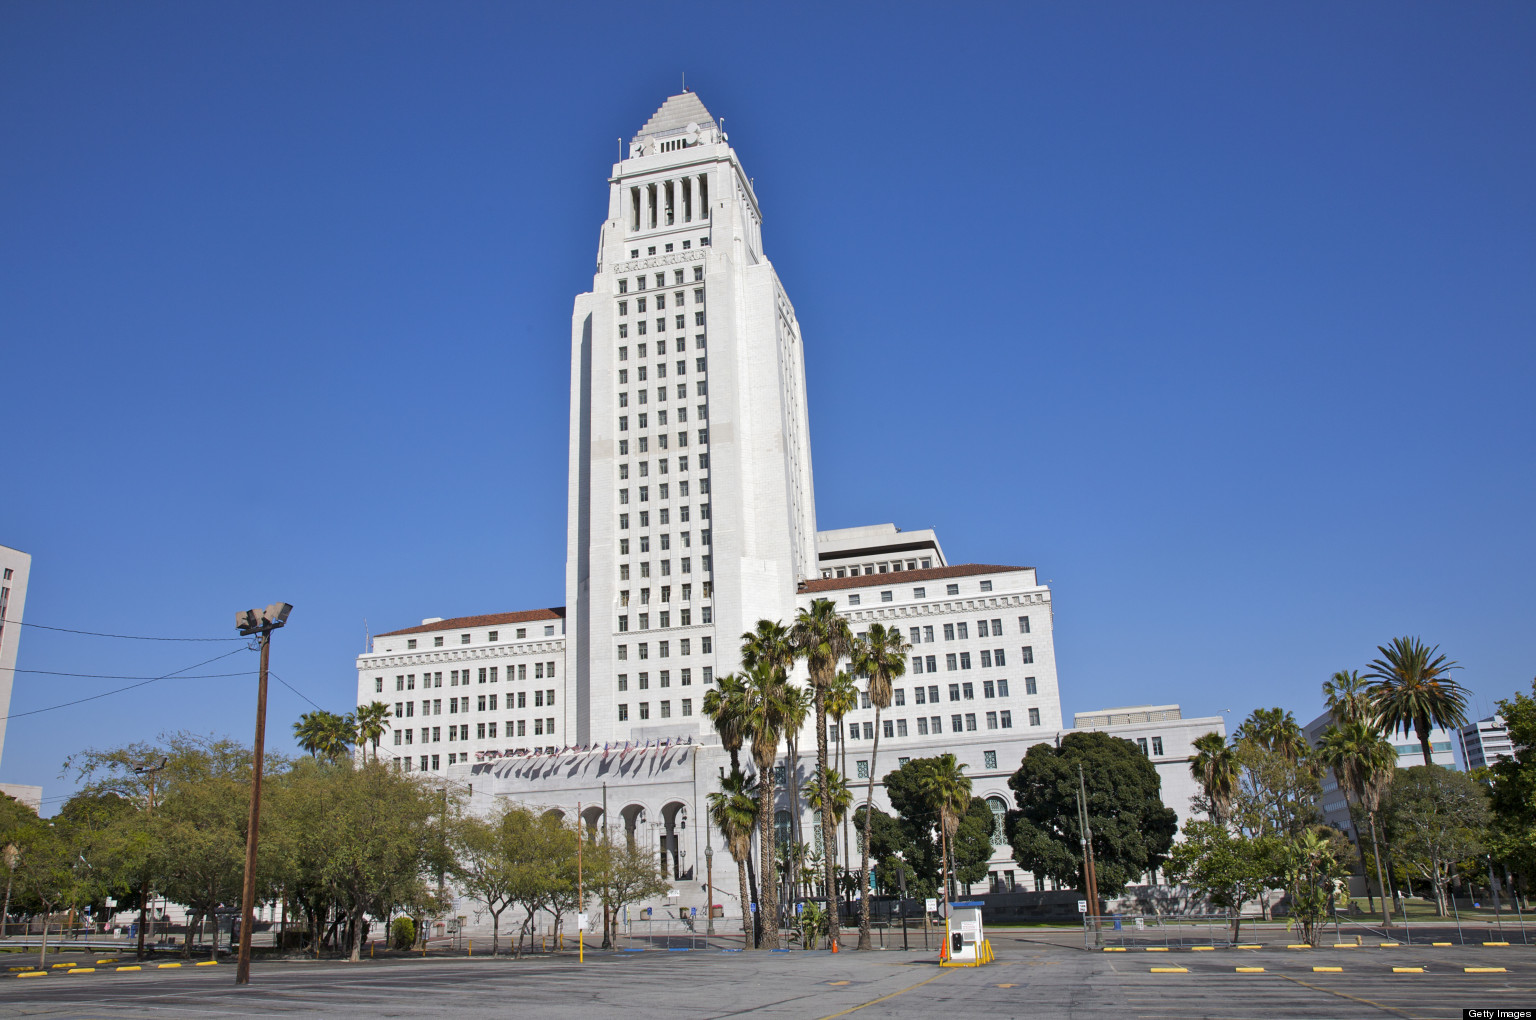 Keeping score on city hall to improve los angeles 39 economy for La city jobs